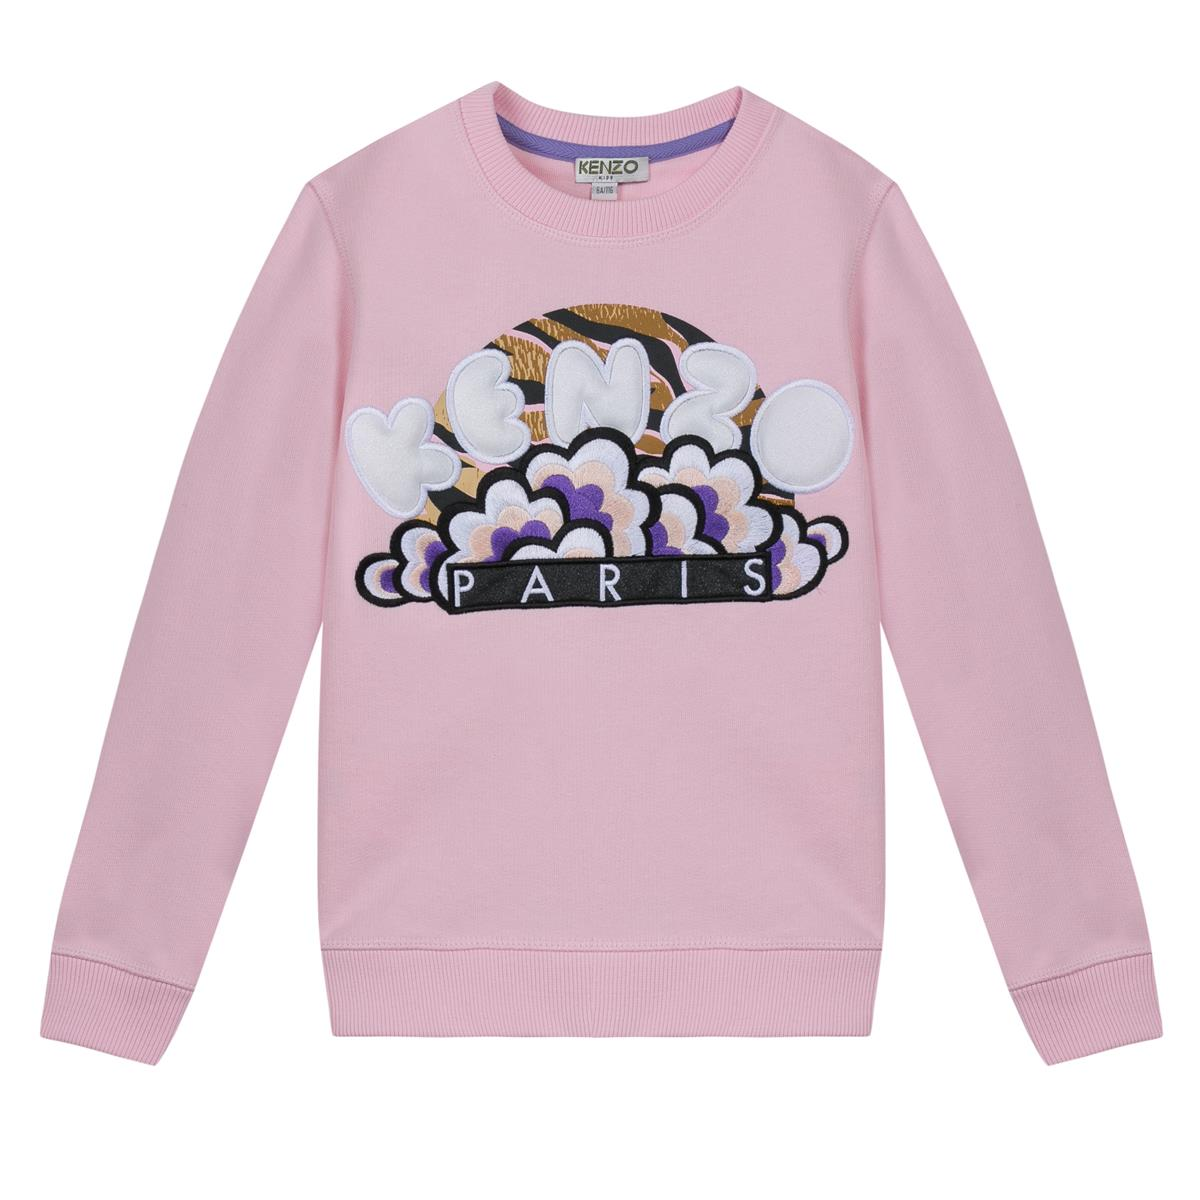 GIRL SWEATER FRONT (Copy)